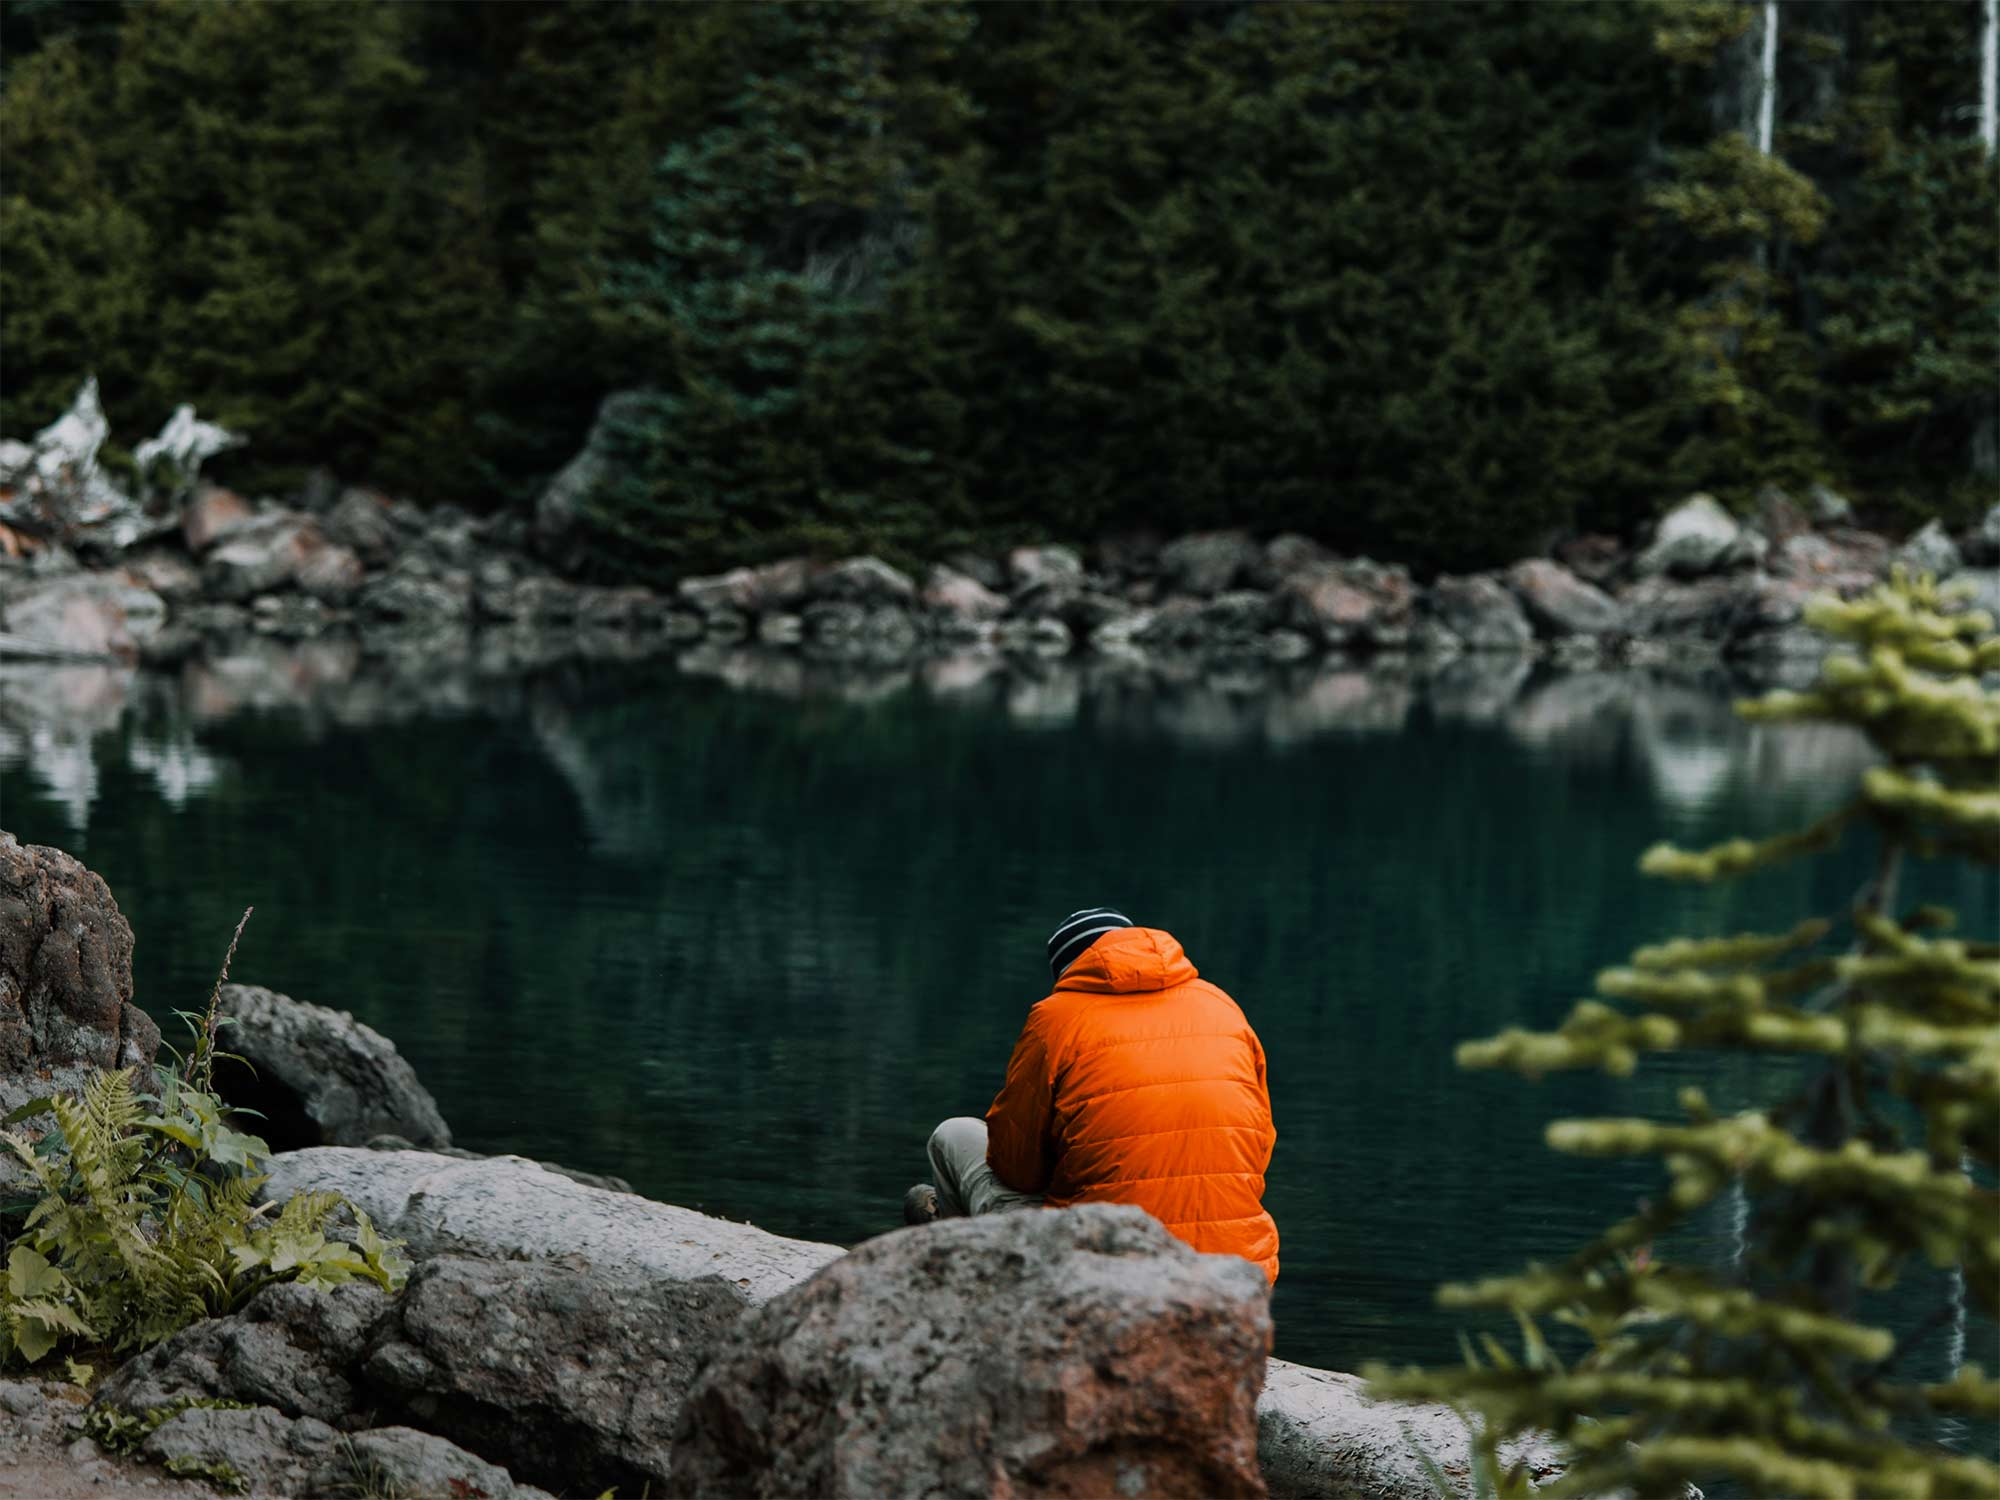 Three Things to Consider When Choosing a Down Jacket